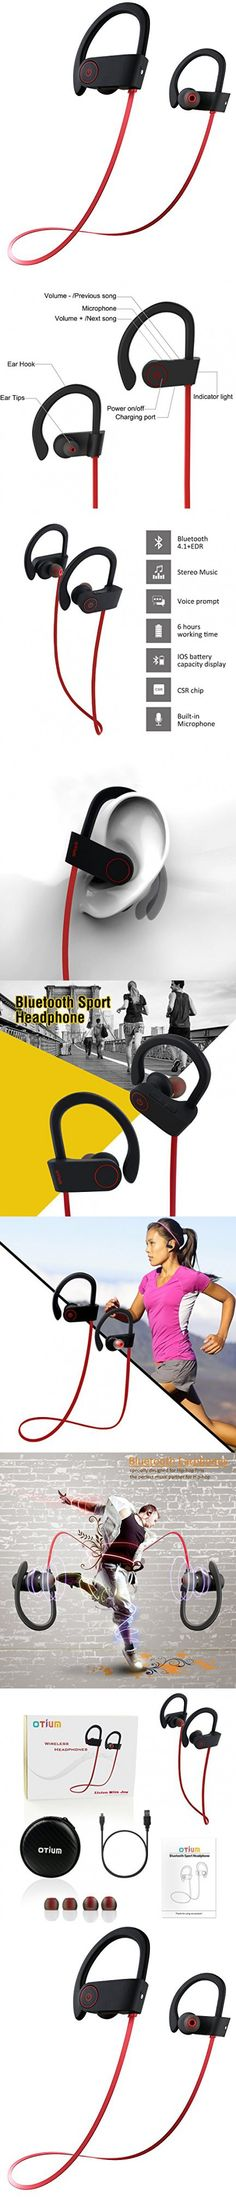 Otium Wireless Bluetooth Sports Headphones In-Ear Earbuds Sweatproof Earphones Stereo with Mic Bass Noise Cancelling Bluetooth V4.1 for iPhone Android Smartphones